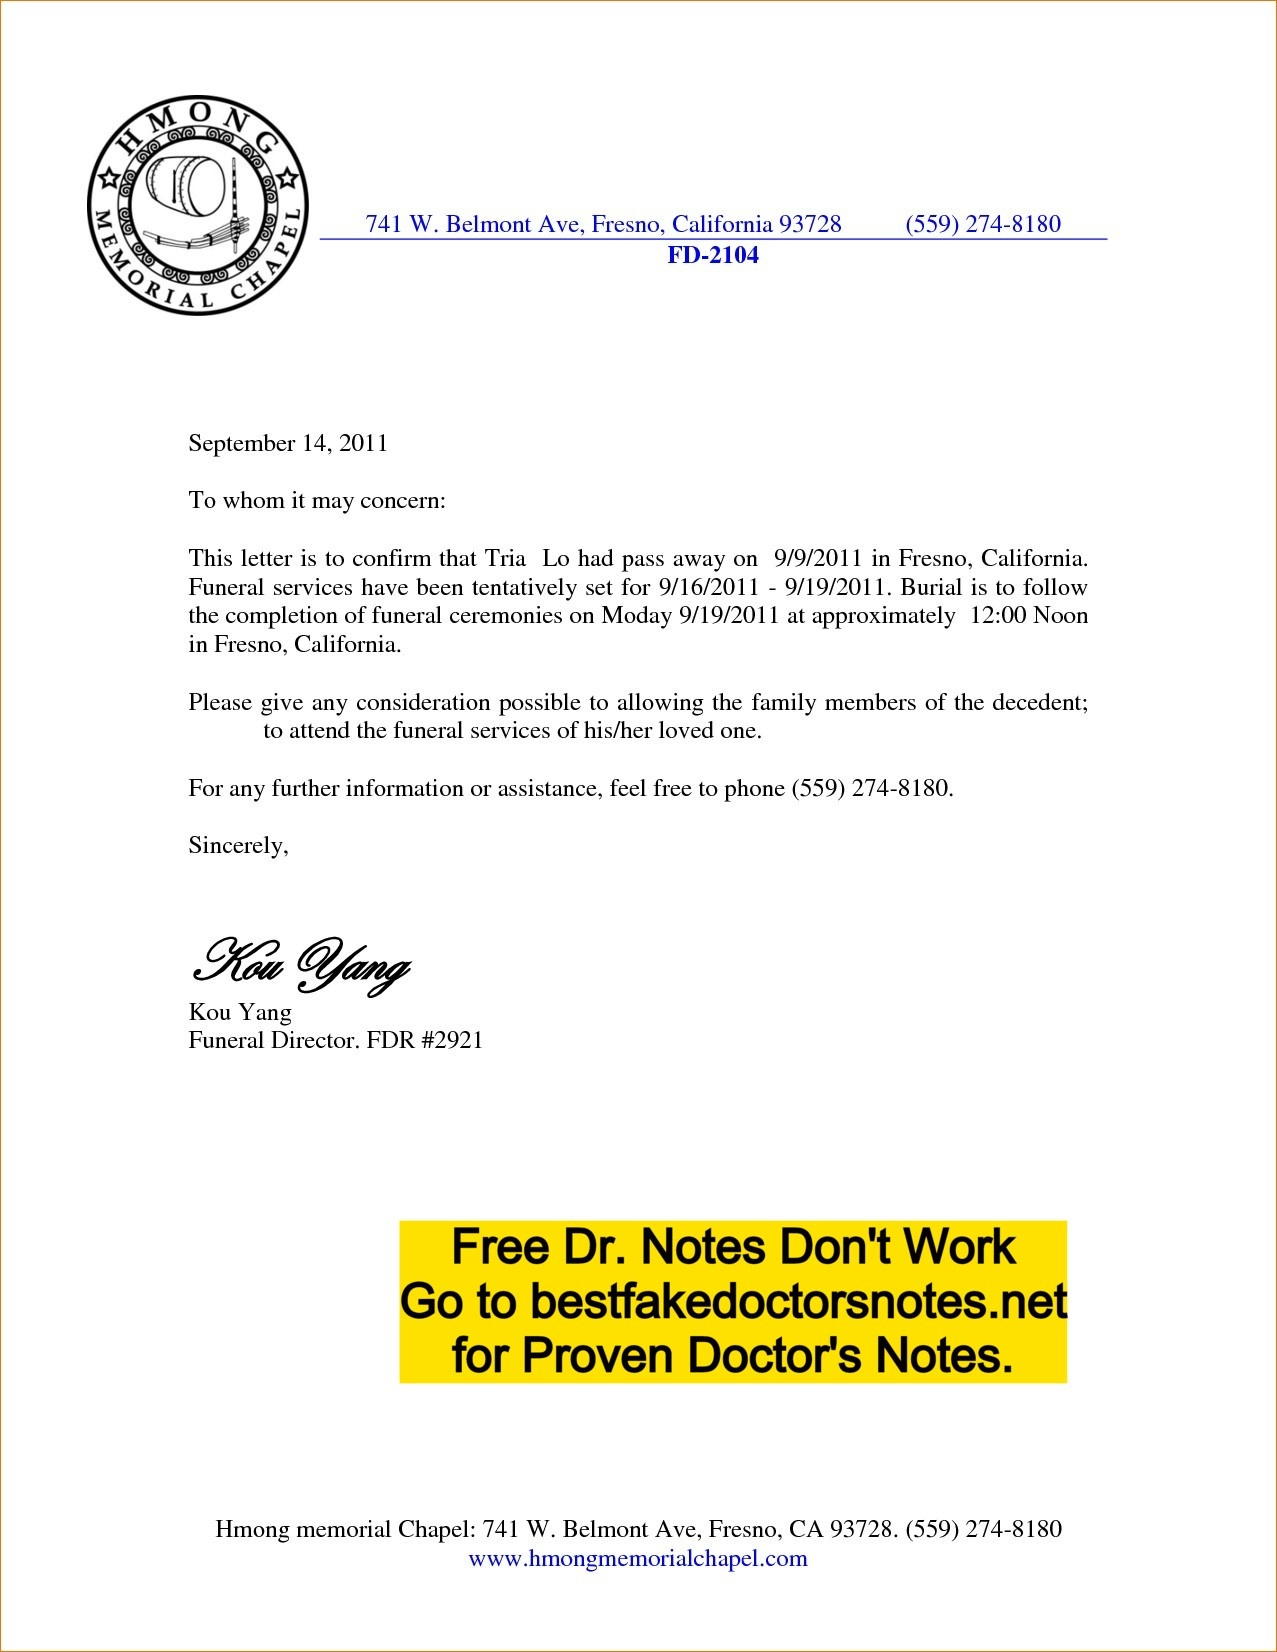 4 Easy Ways To Use A Printable Fake Doctors Note - Printable Fake Doctors Notes Free